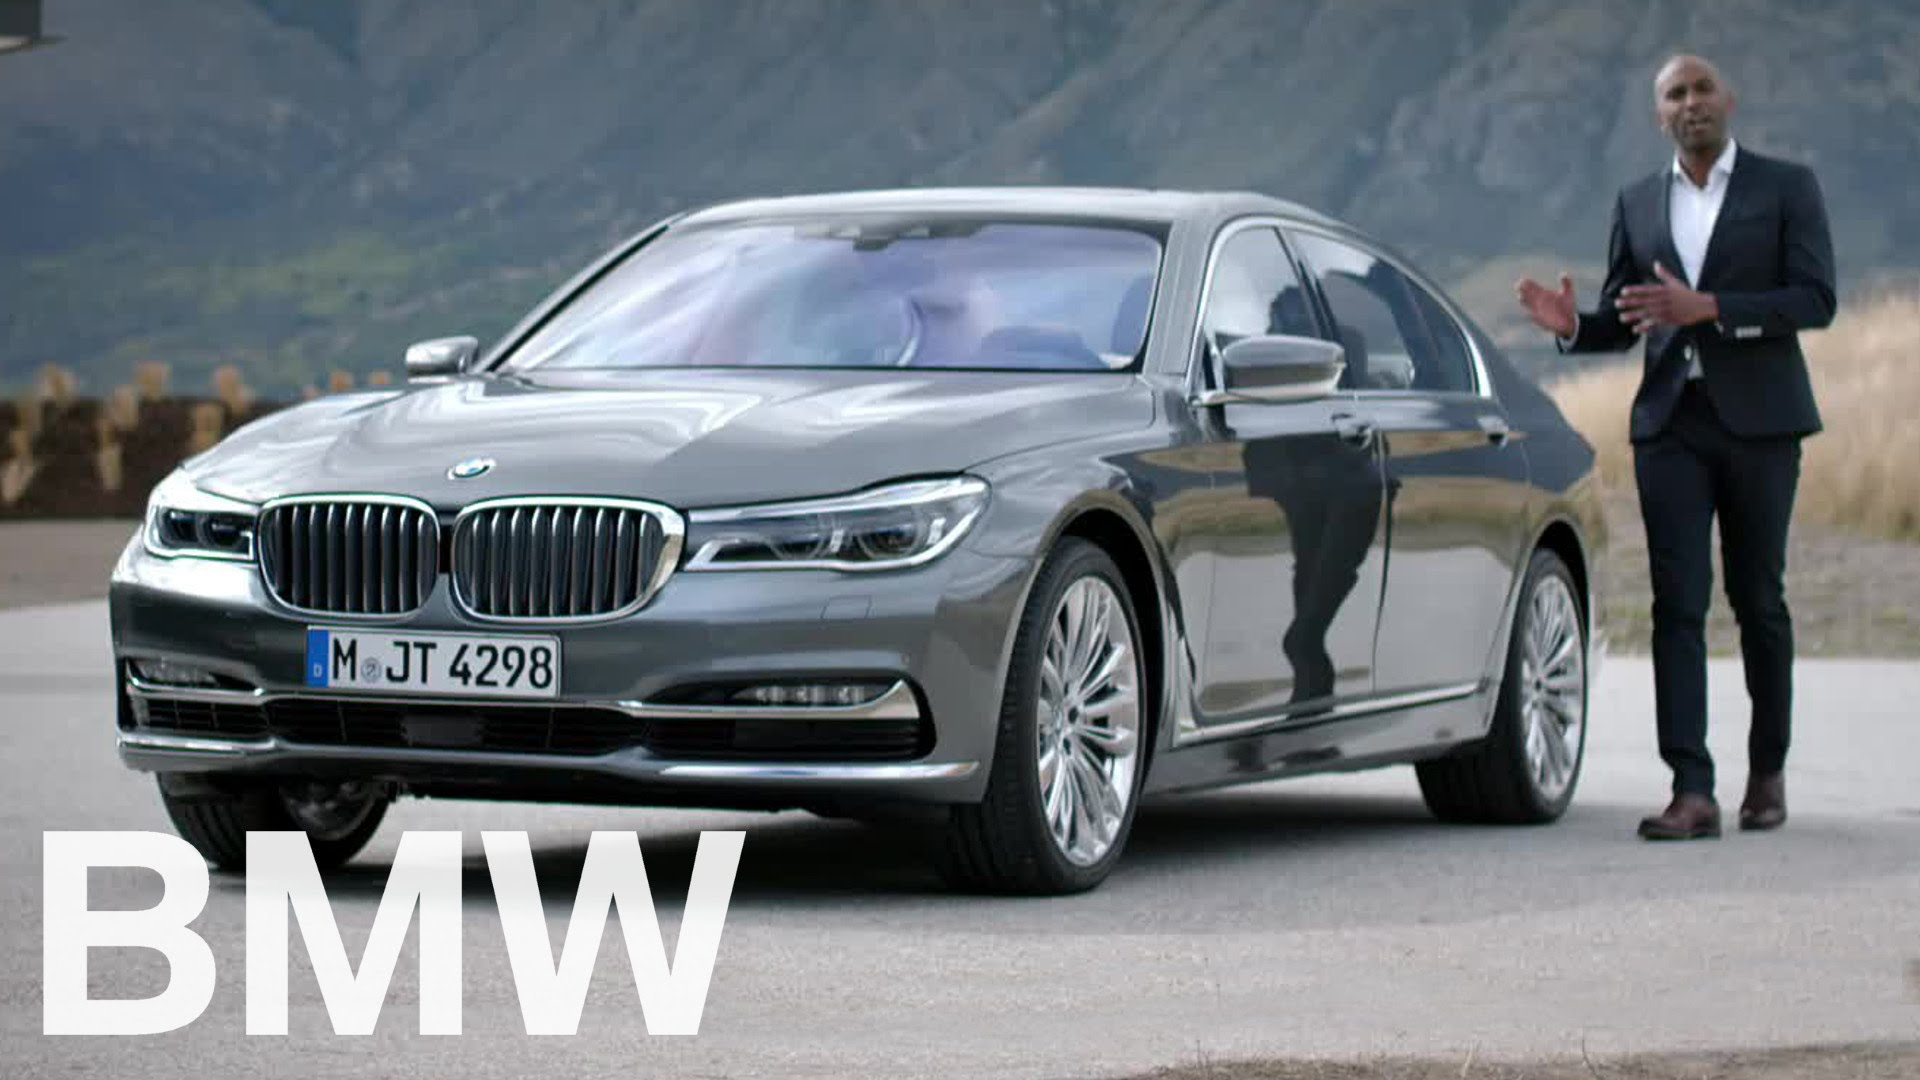 7 Serie The Technology In The New Bmw 7 Series Is Insane